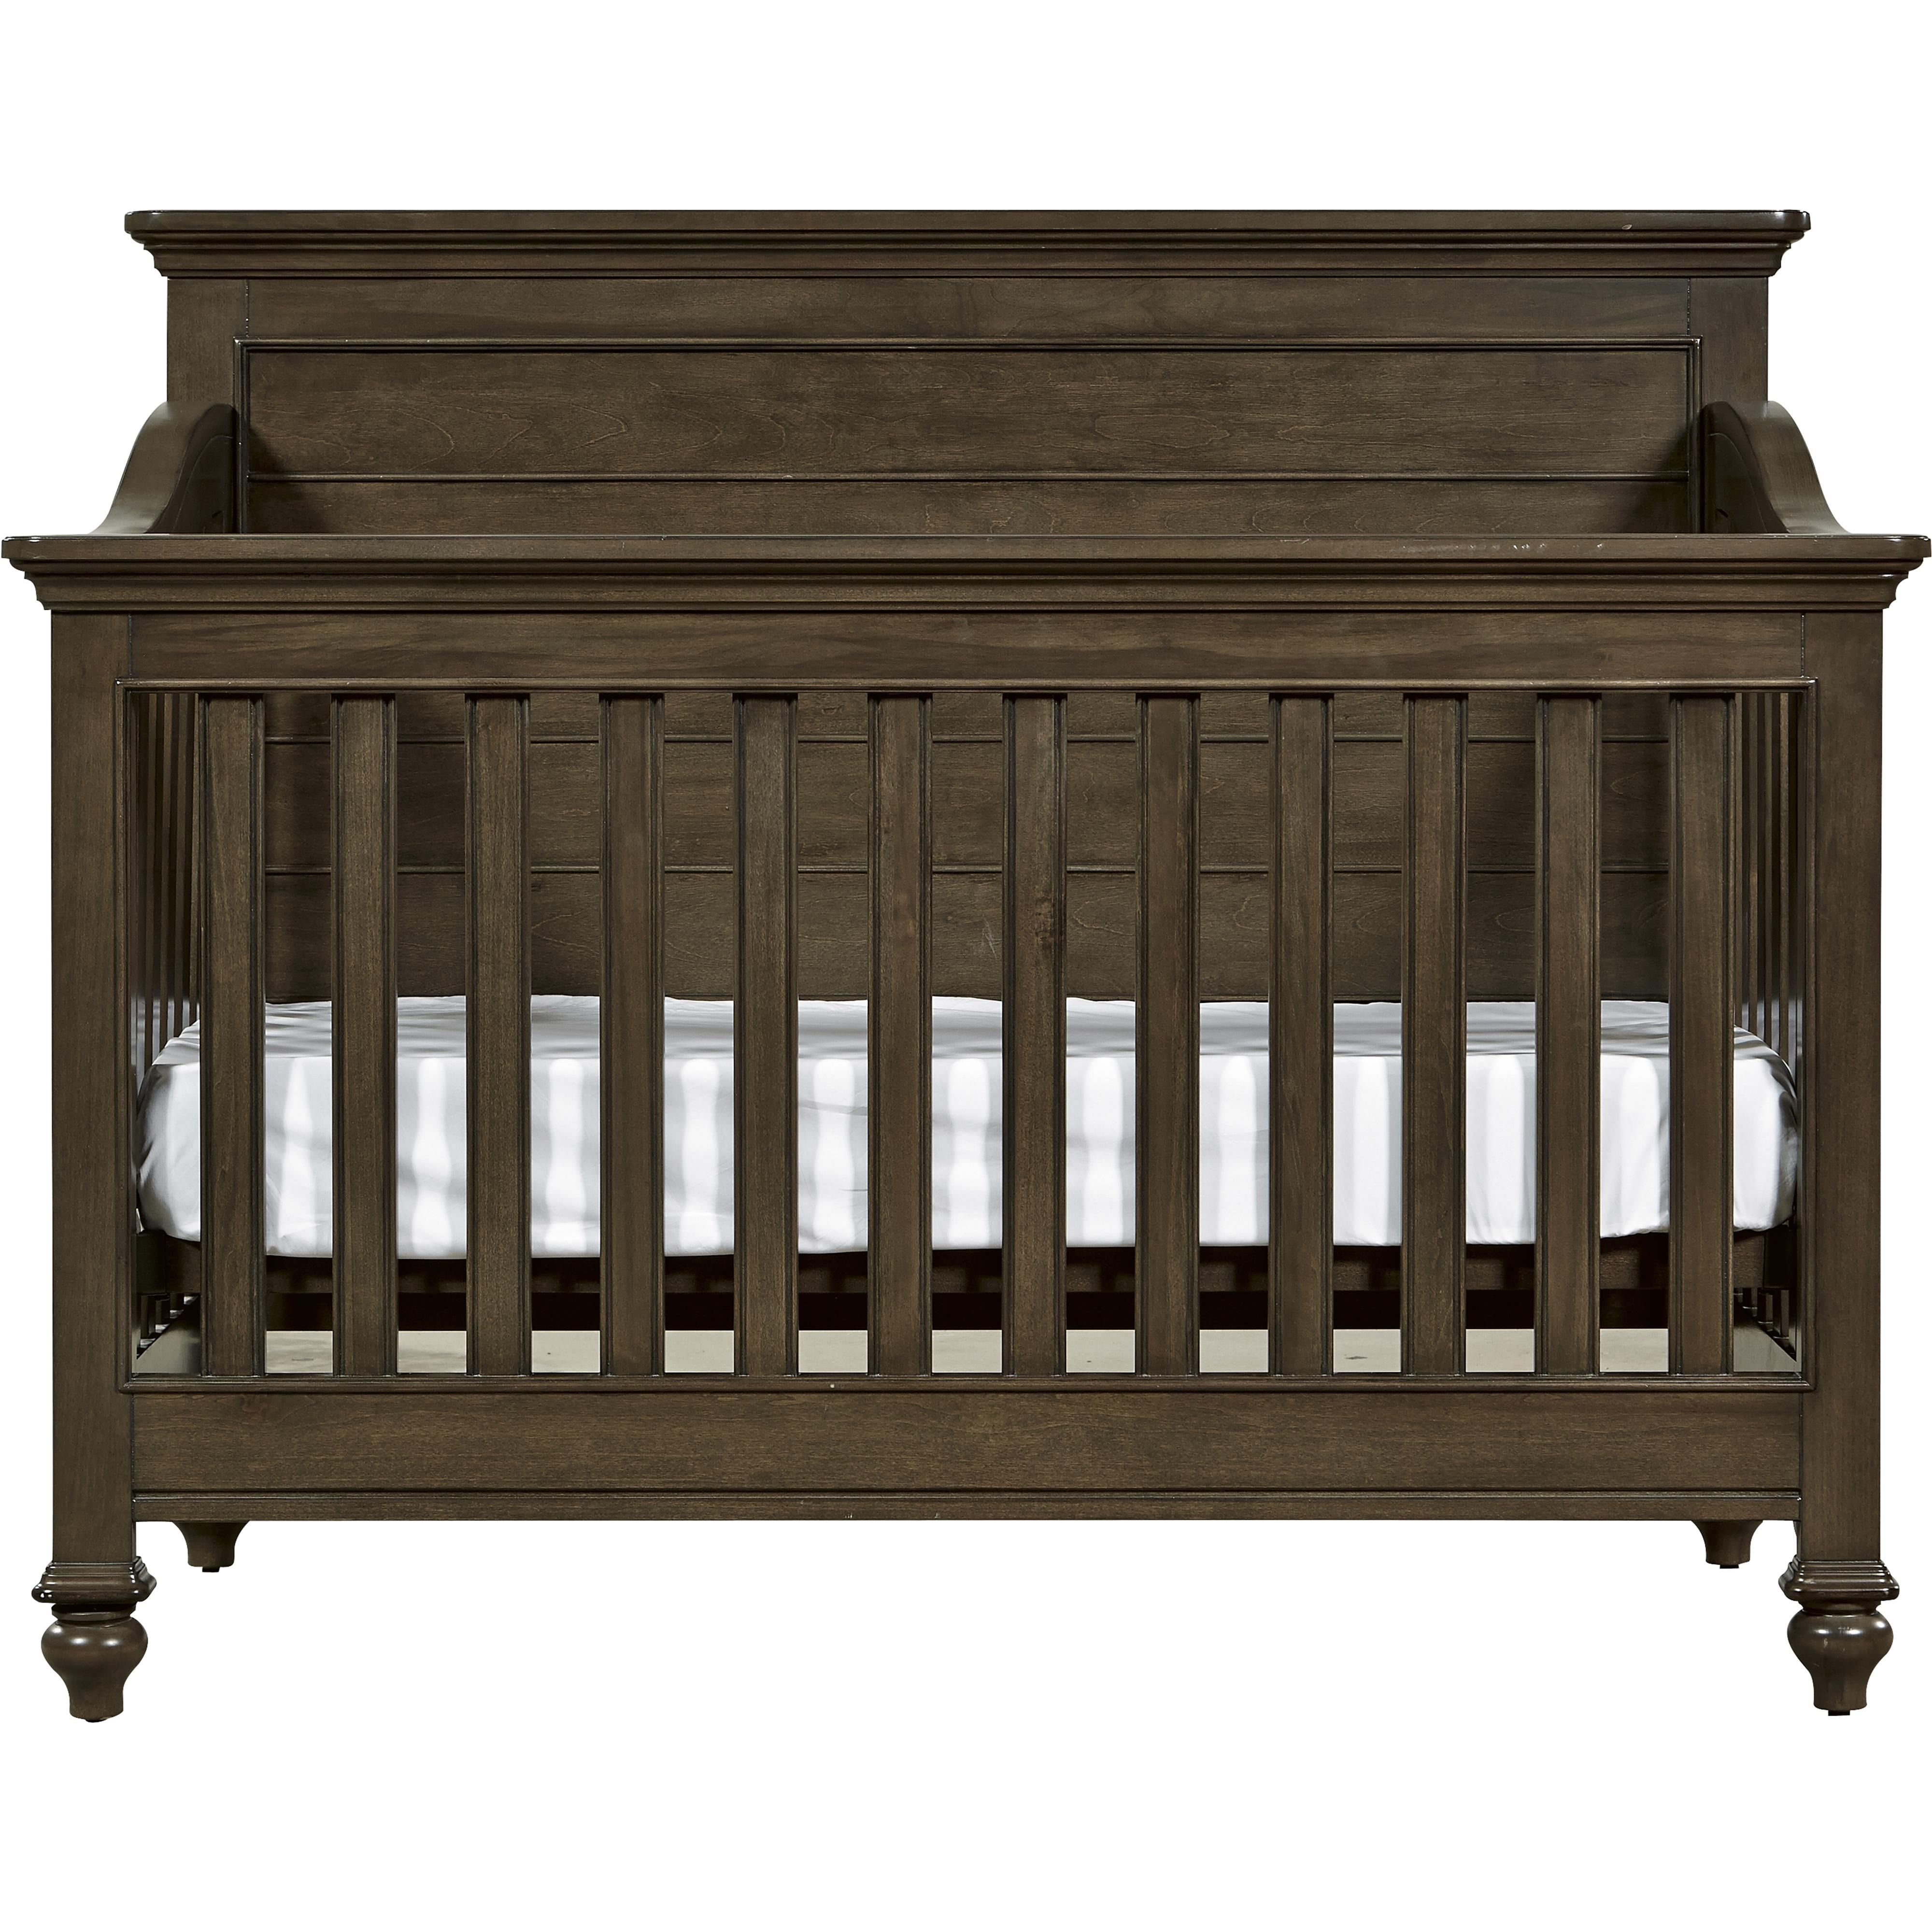 Varsity Convertible Crib By Smartstuff Available At Www Muellerfurniture Com Or In Store At Mueller Furniture And M Convertible Crib Cribs Universal Furniture